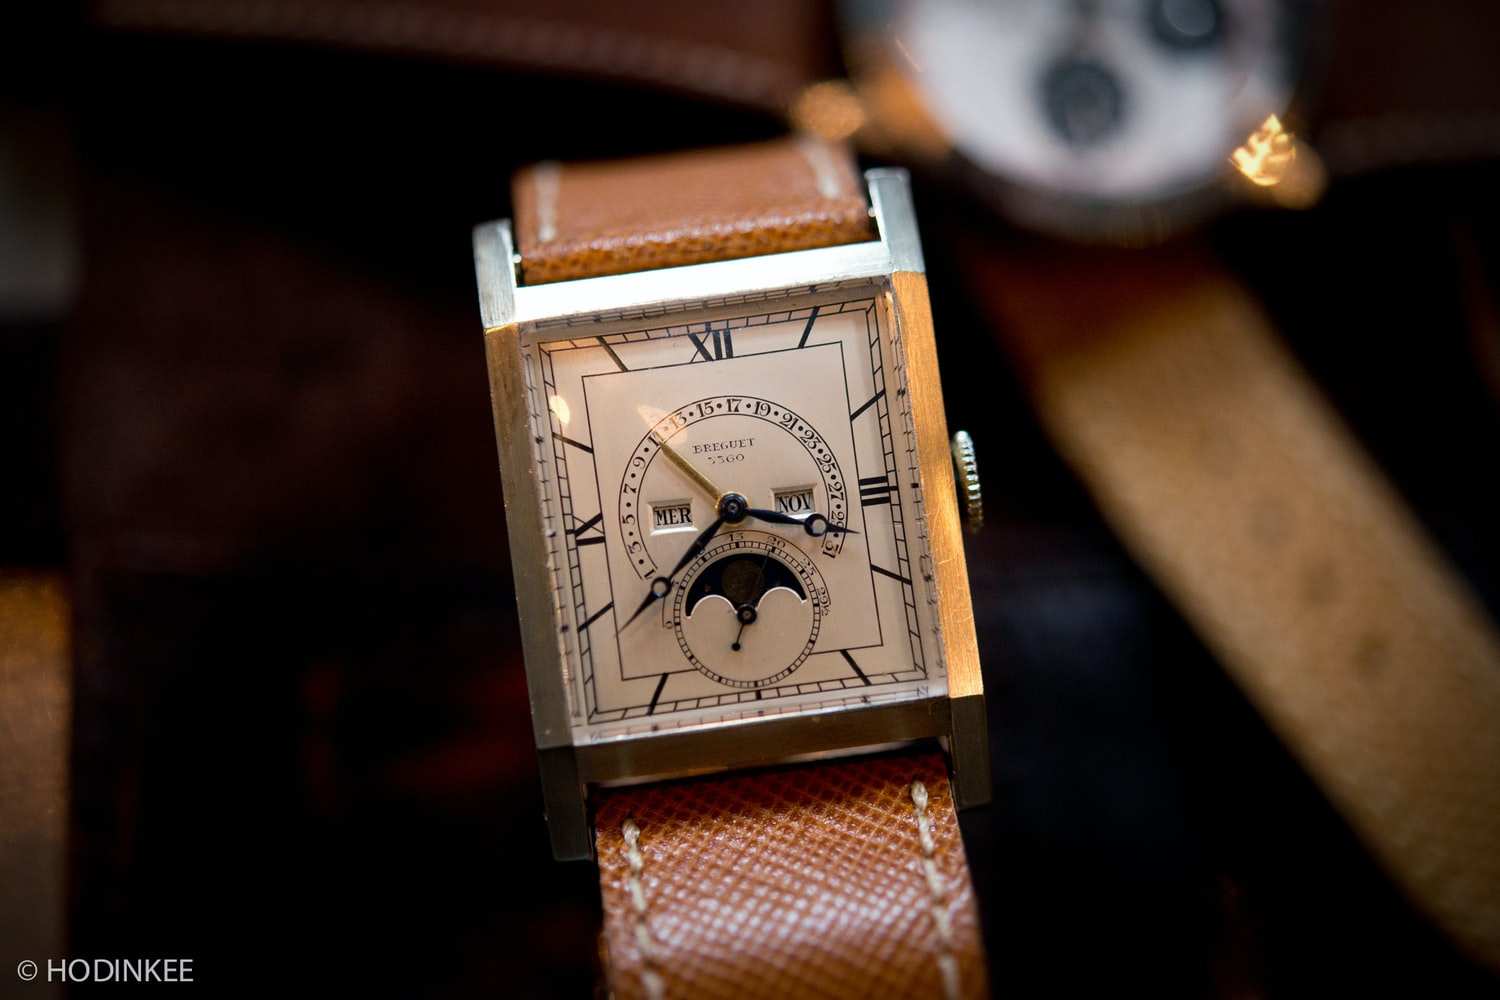 Historical Perspectives: (Possibly) The World's First Perpetual Calendar Wristwatch, From Breguet, Revisited On Leap Day 2016 Historical Perspectives: (Possibly) The World's First Perpetual Calendar Wristwatch, From Breguet, Revisited On Leap Day 2016 TalkingWatchesJohnGoldberger 24